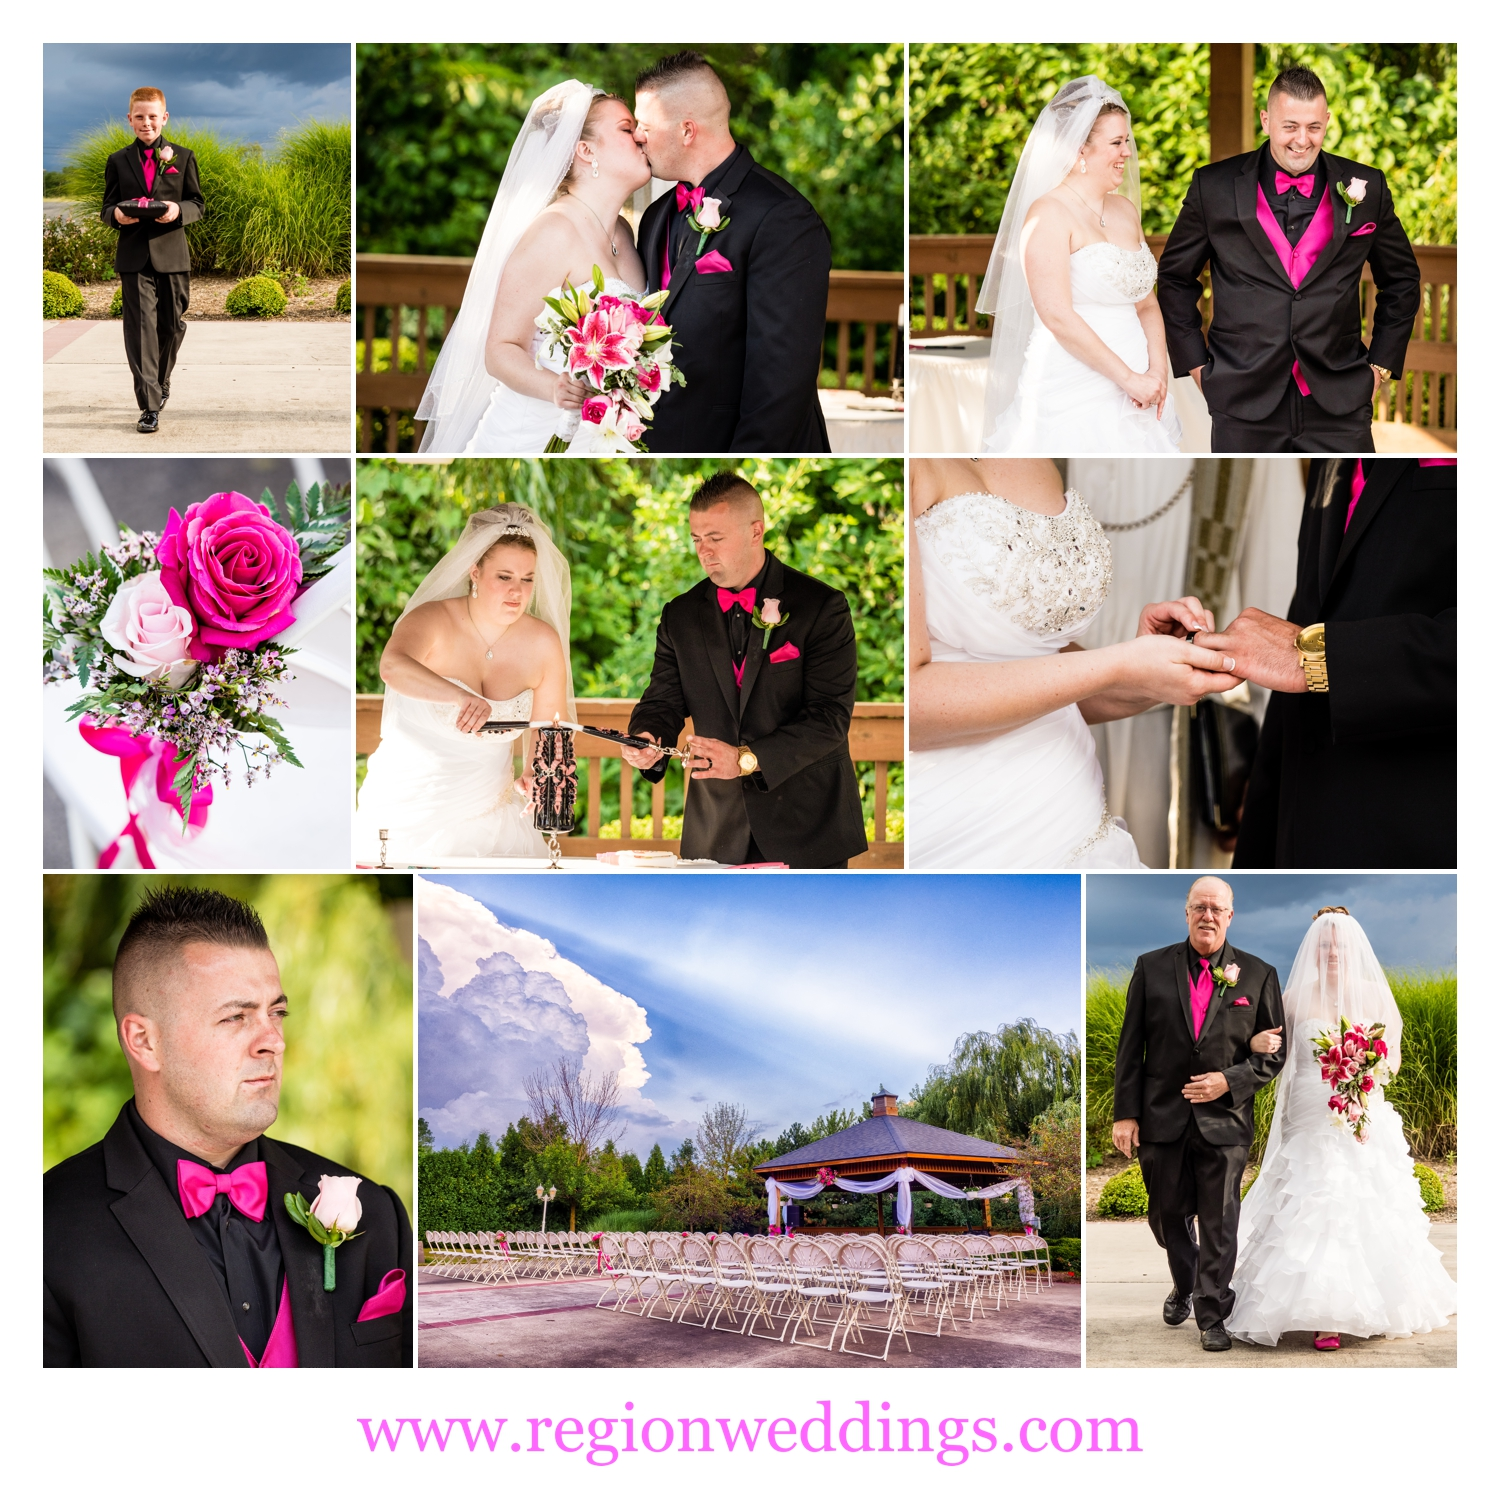 An outdoor wedding ceremony at Avalon Manor in Merrillville, IN.